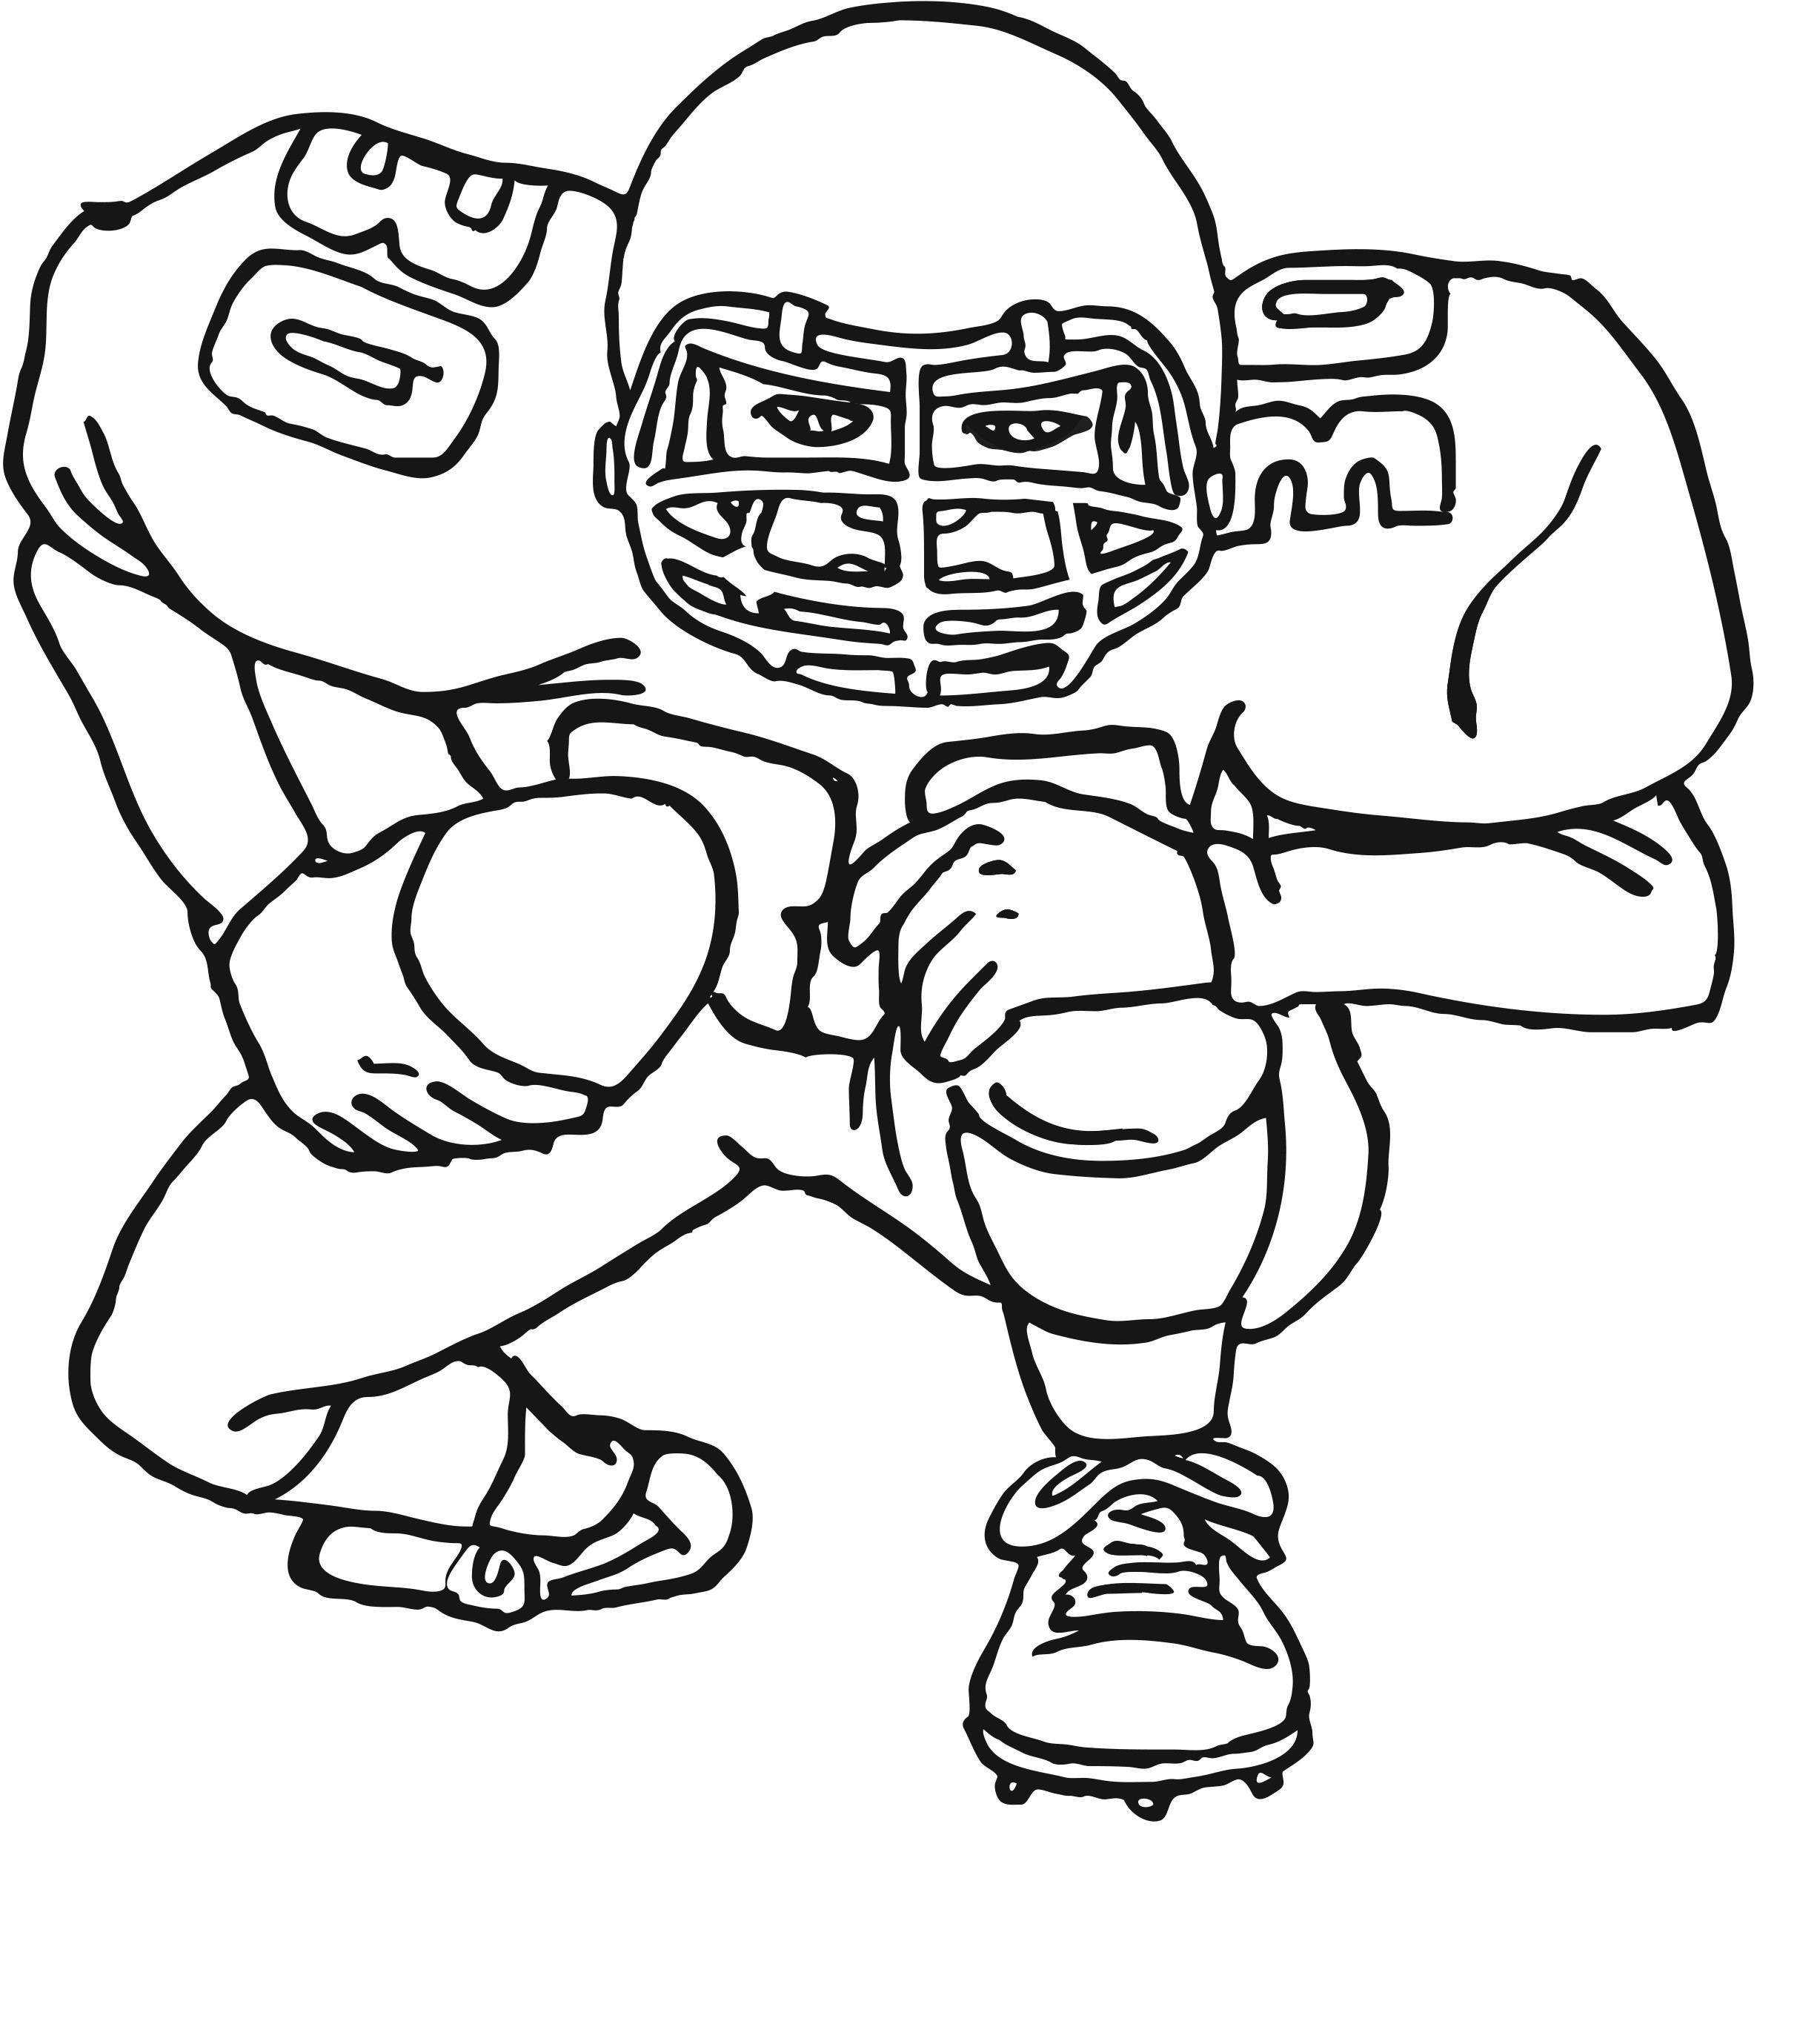 new york jets coloring pages coloring pages winnipeg jets coloring pages york jets pages new coloring